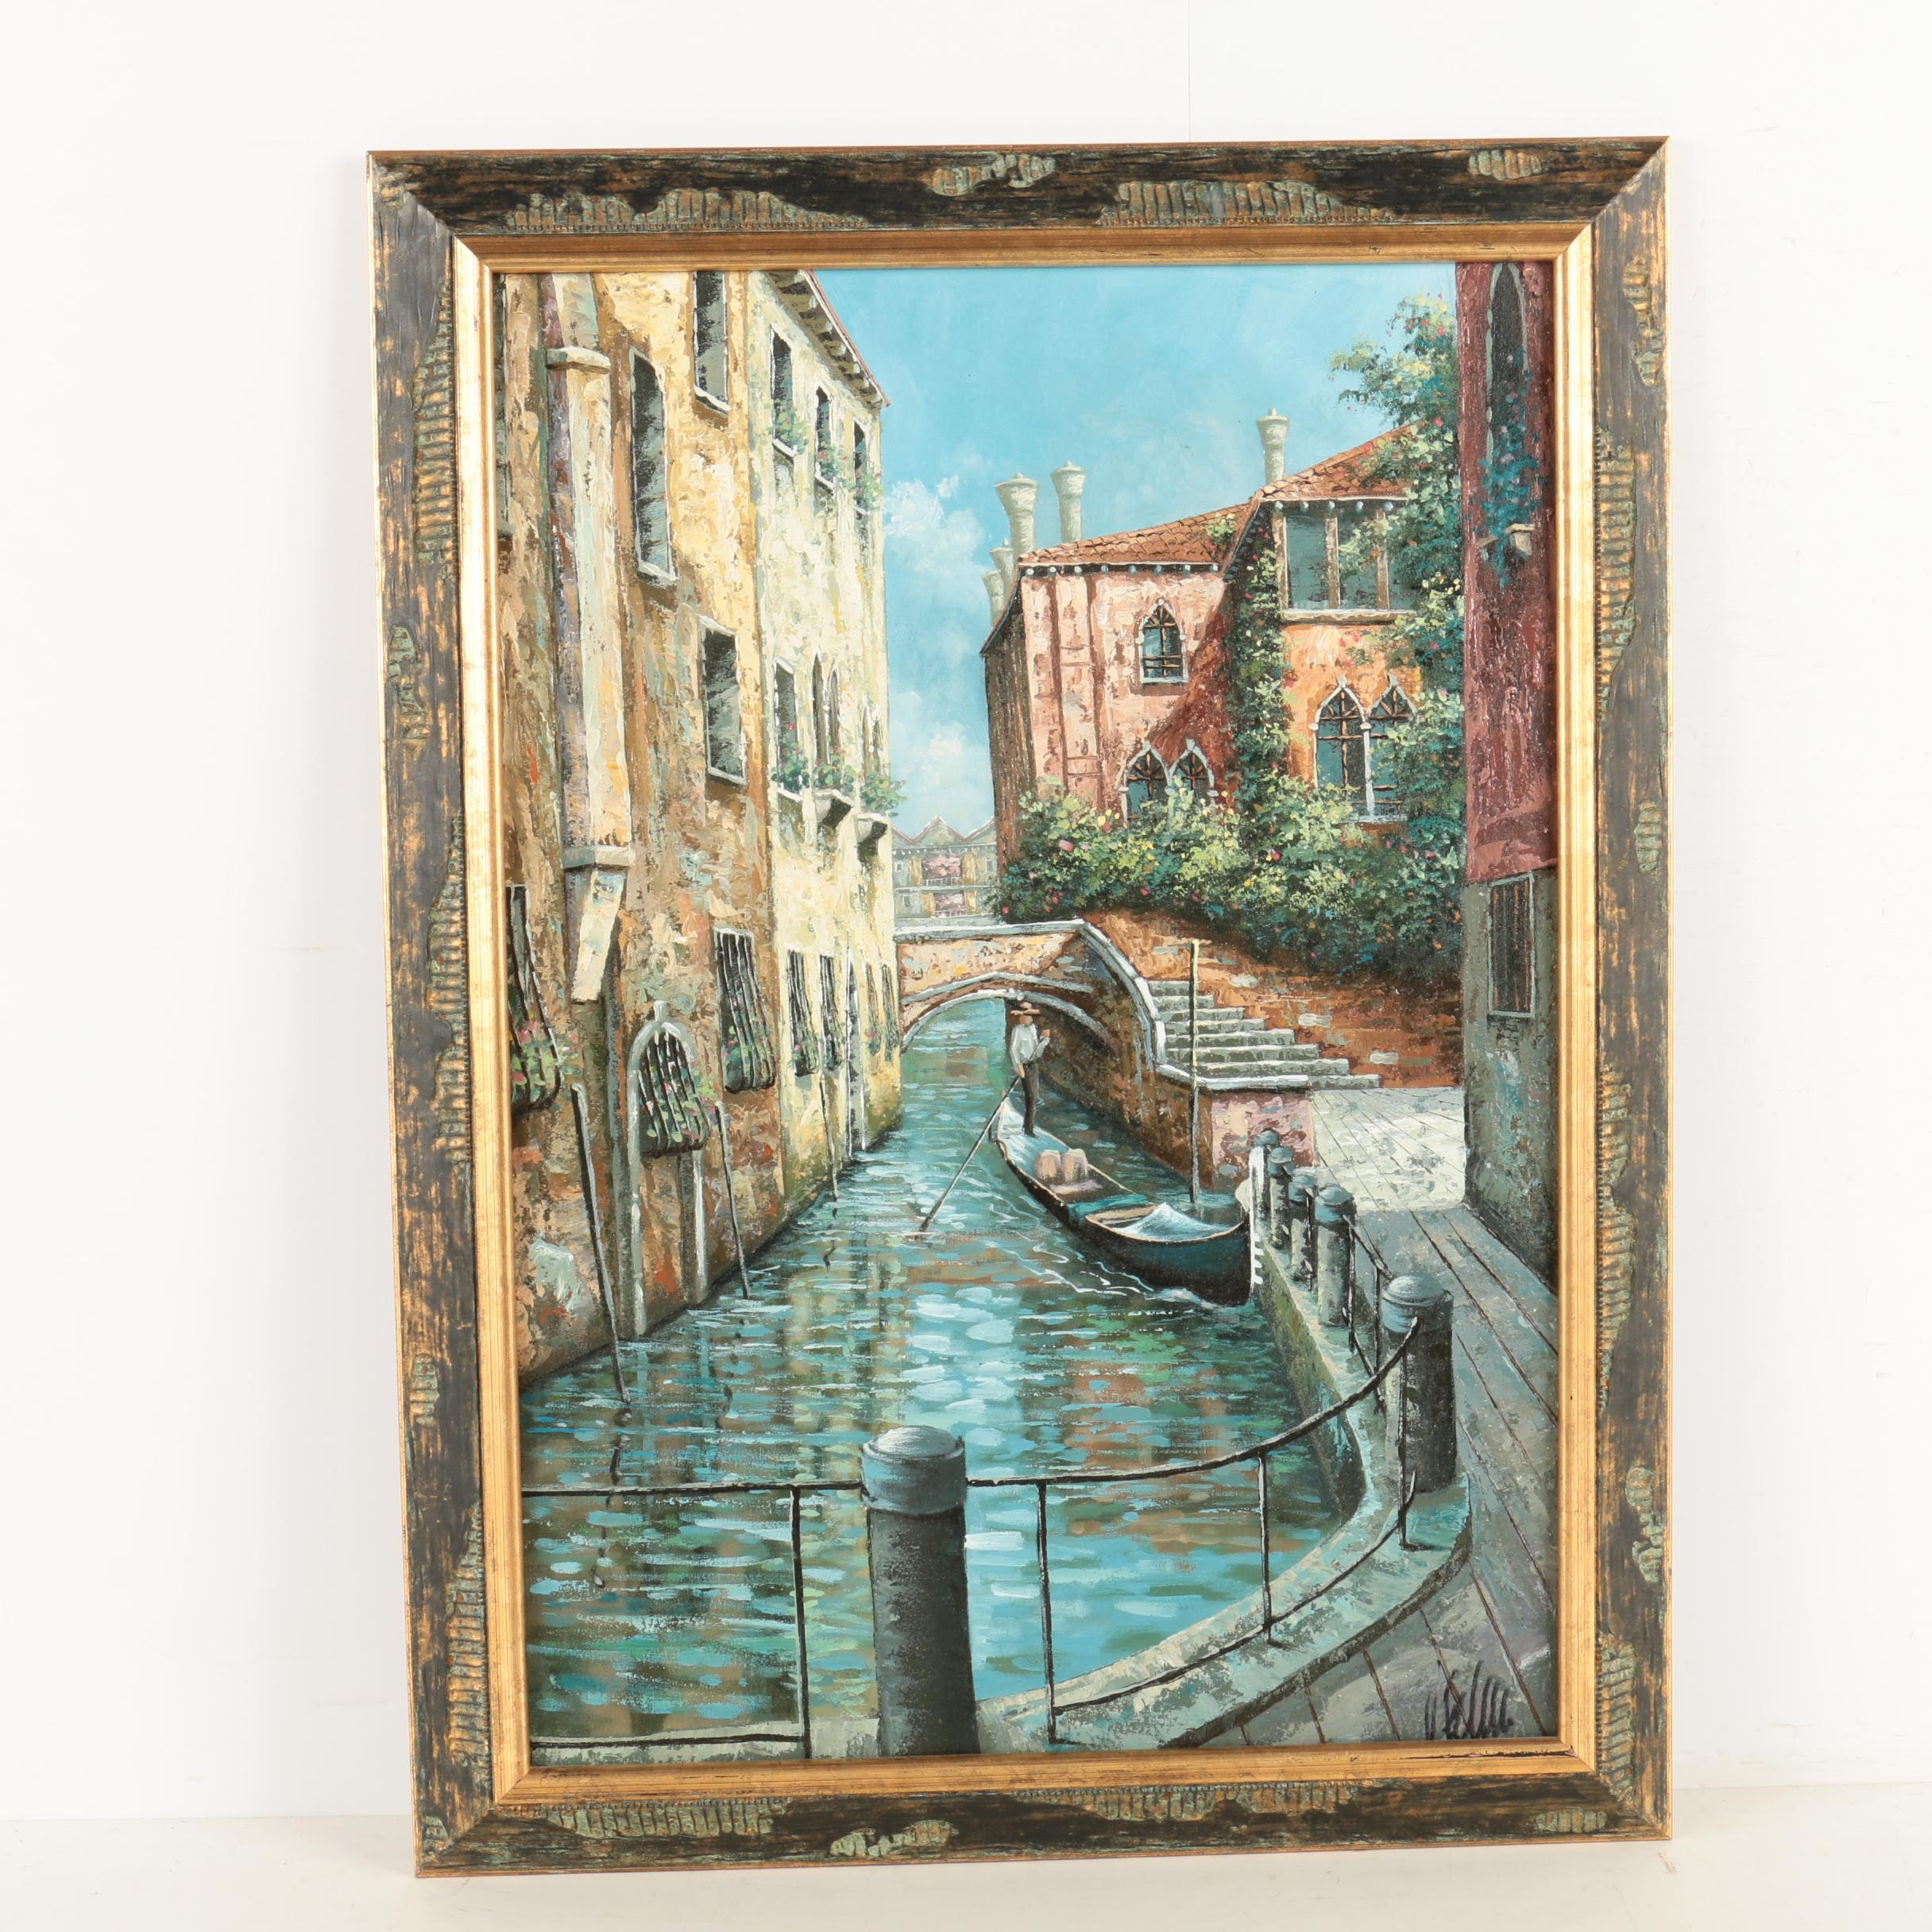 Loris Vendramin Oil Painting on Canvas of a Venetian Canal